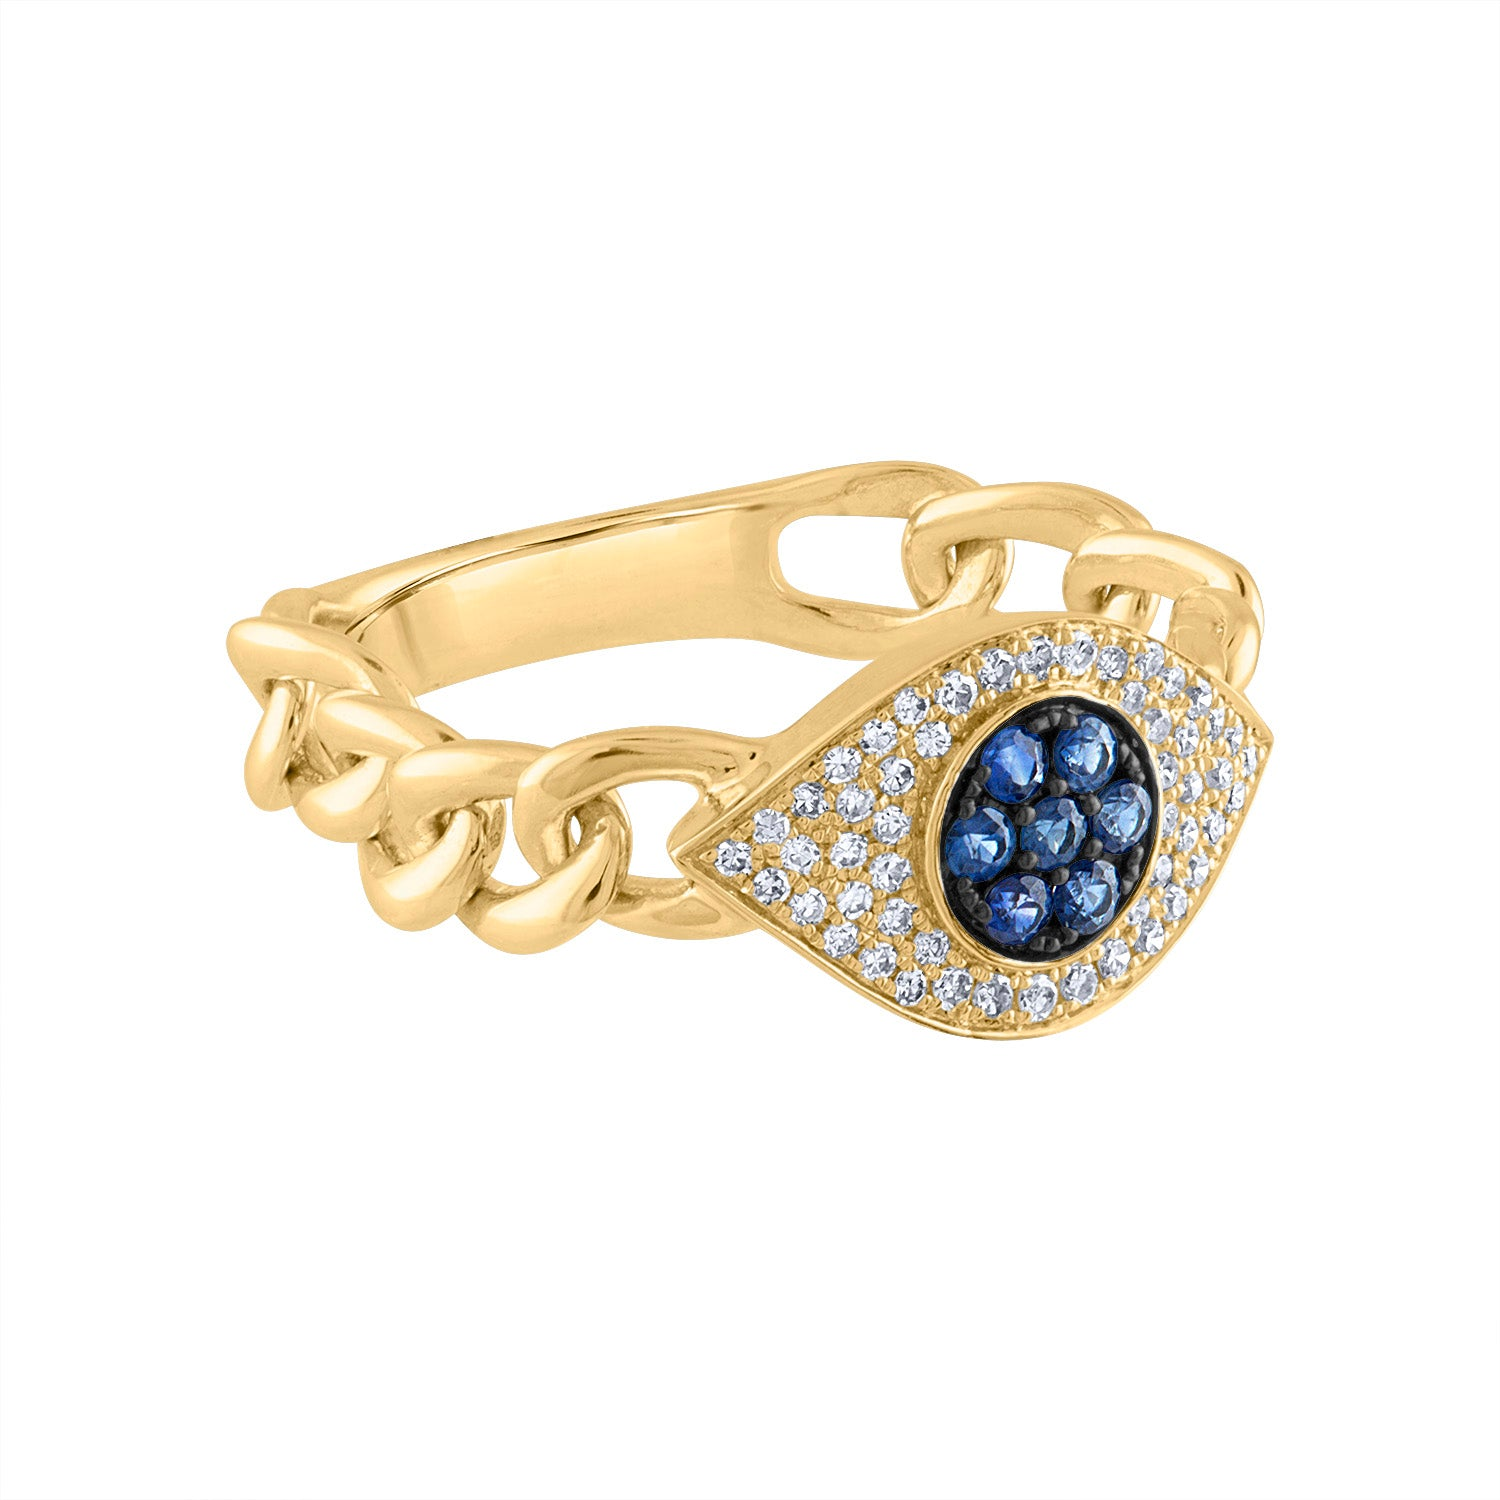 14KT GOLD DIAMOND AND BLUE SAPPHIRE EVIL EYE CHAIN LINK RING